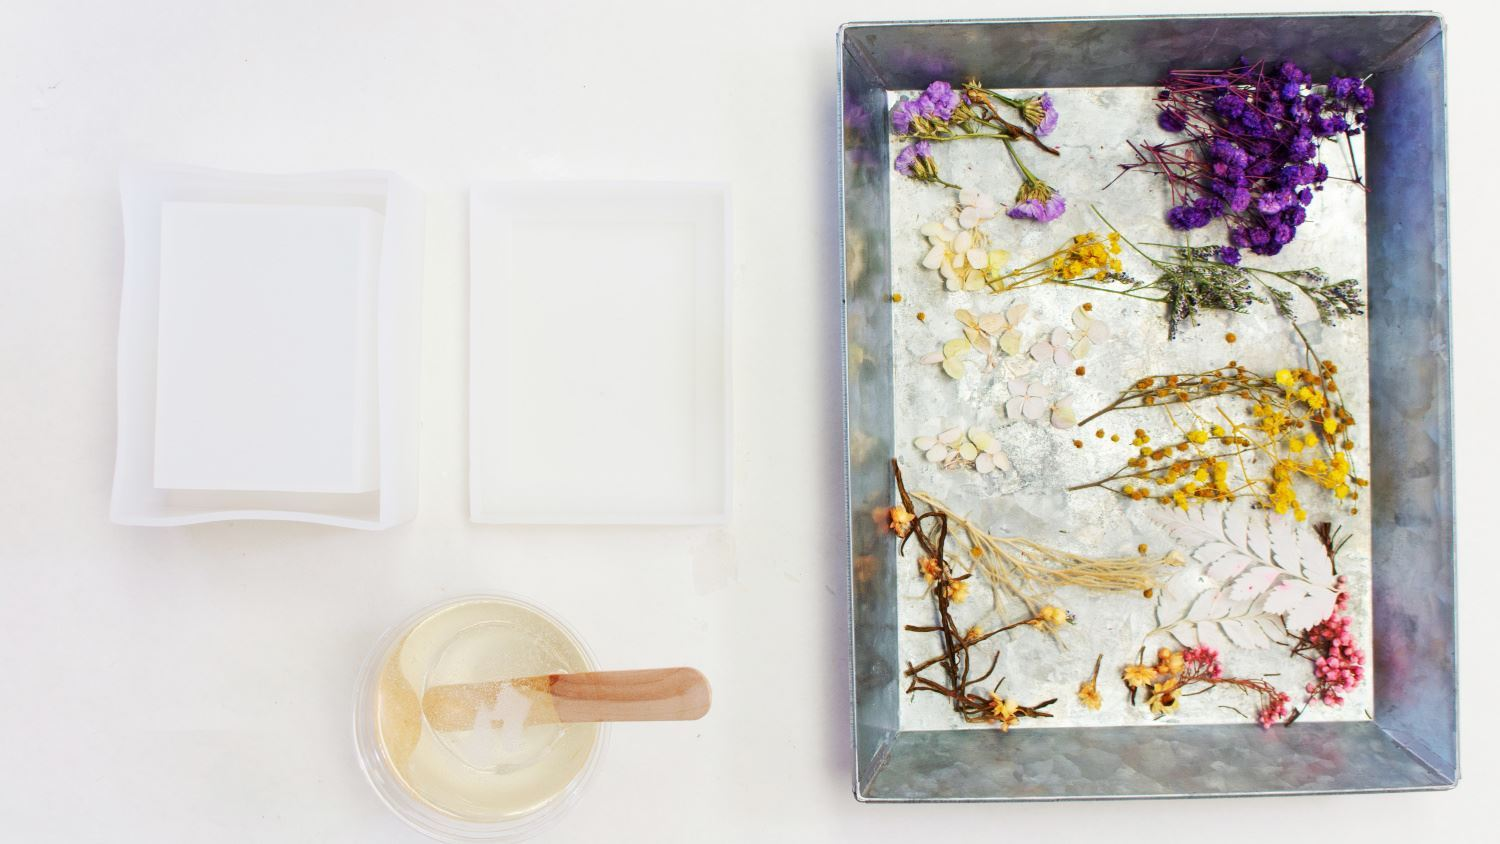 Pour some resin into jewelry box lid mold